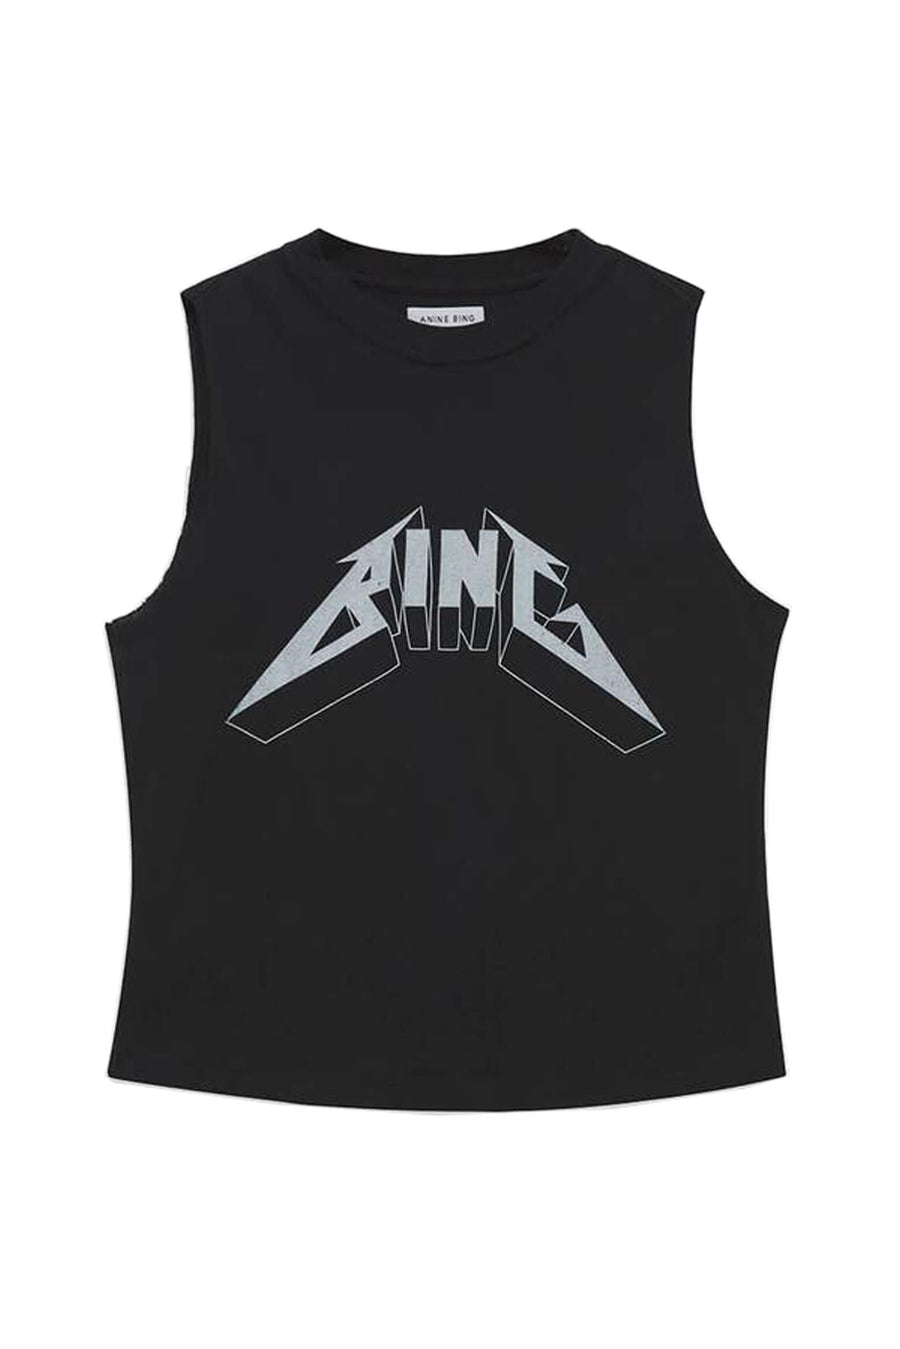 Anine Bing Lenon Tee Bing in Black from The New Trend